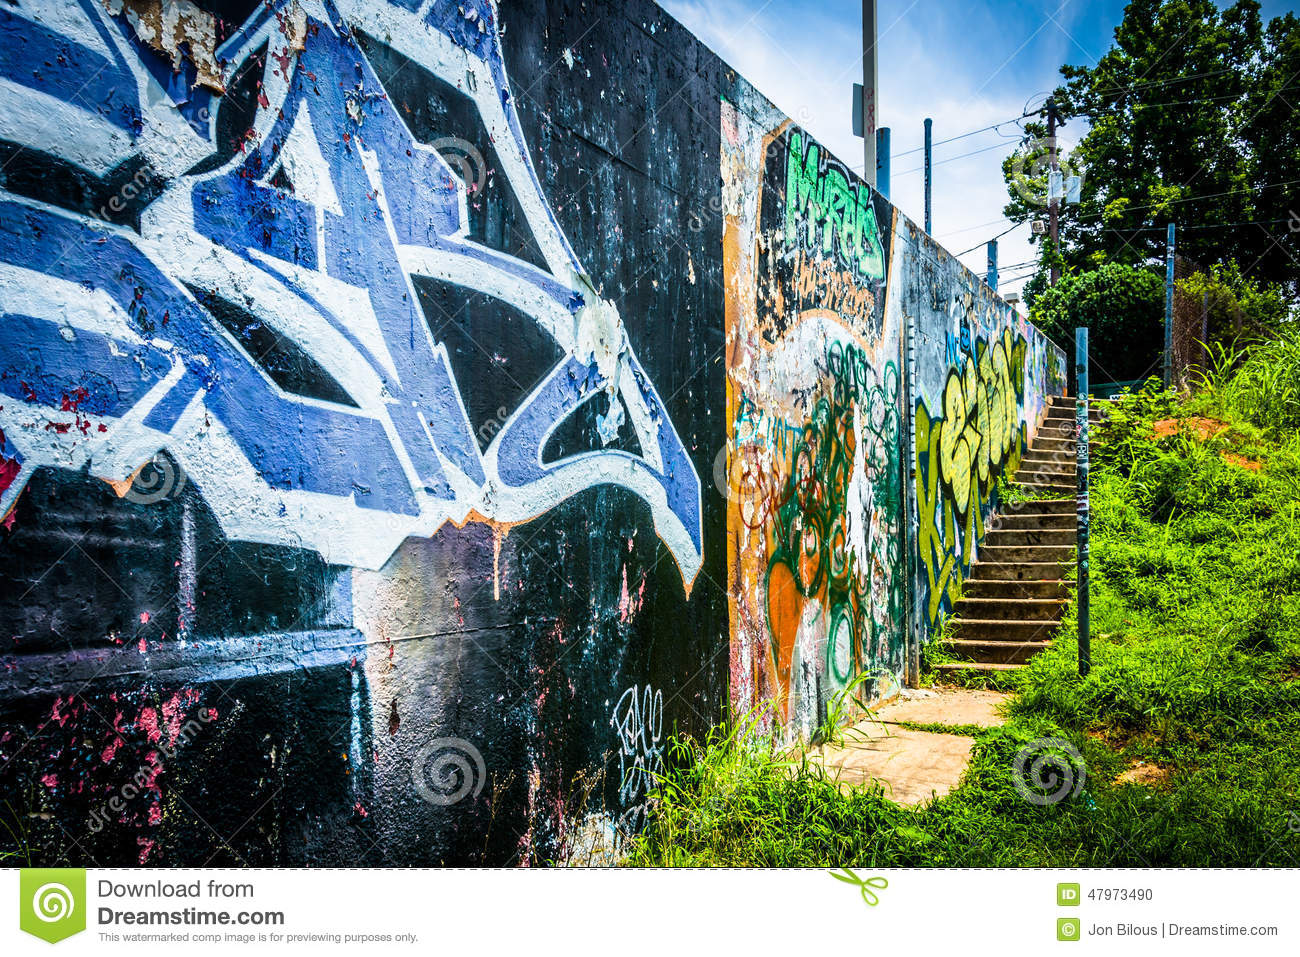 Graffiti wall atlanta - Graffiti On A Wall In Little Five Points Atlanta Georgia Editorial Image